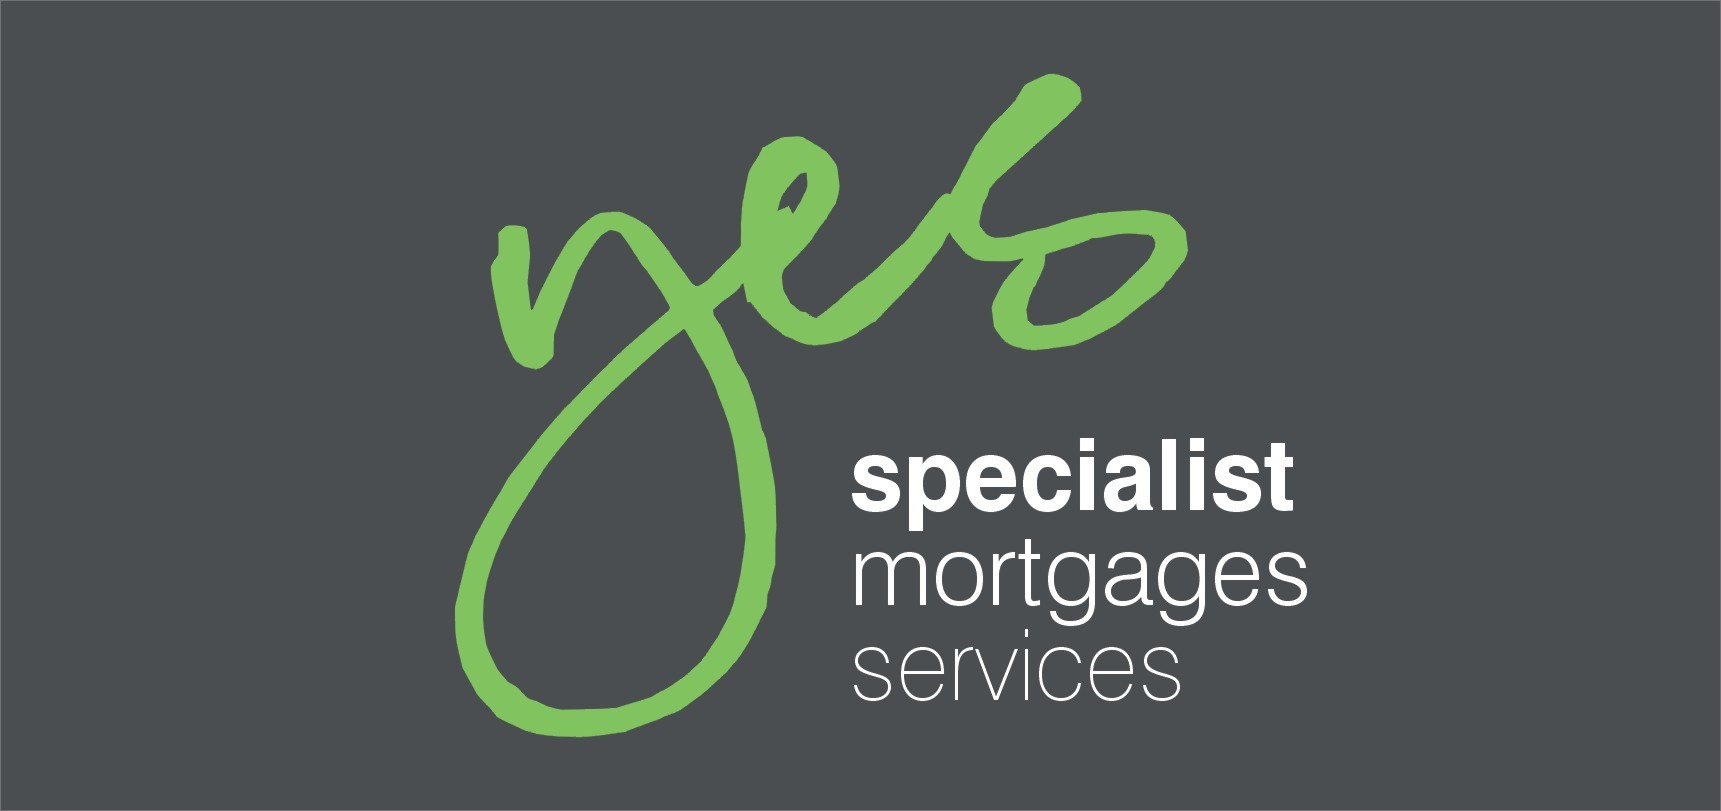 Yes Mortgage Specialist